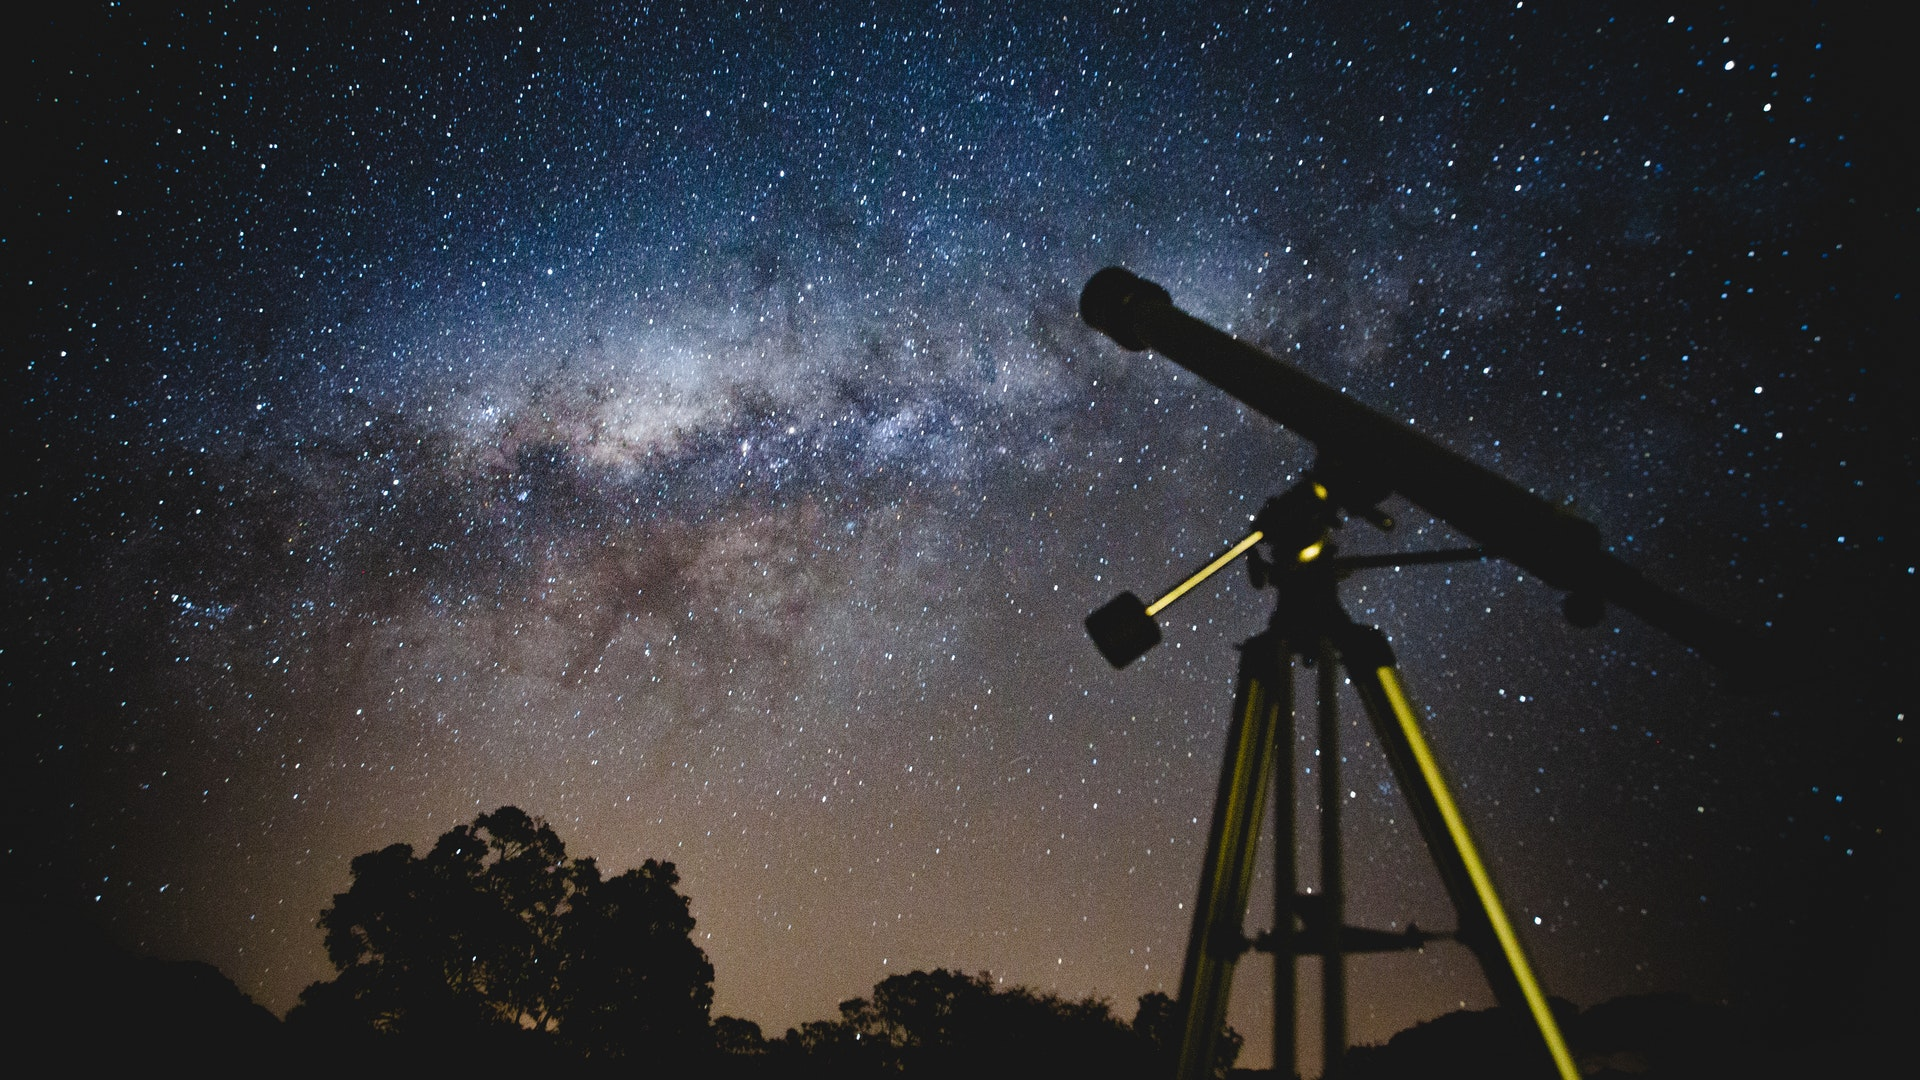 This is a picture of an unmanned telescope aimed at a clearly visible nebula in the sky. It looks just like the milky way and the sky is littered with gleaming sparkles of light emitted from the stars. This is an obvious setup of someone who is studying astrology